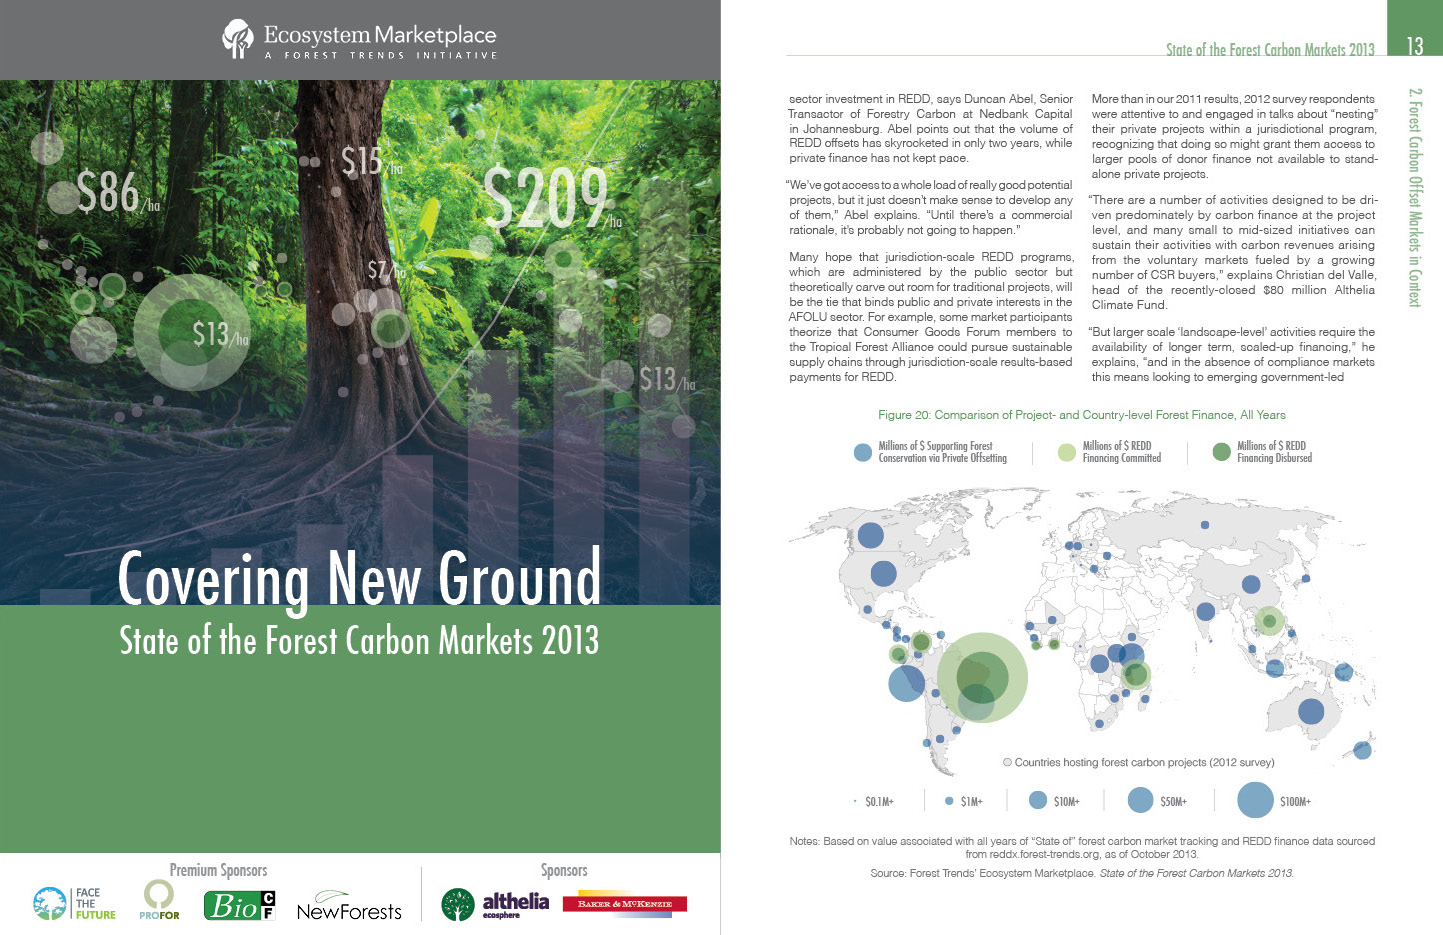 Forest Carbon Markets 2013